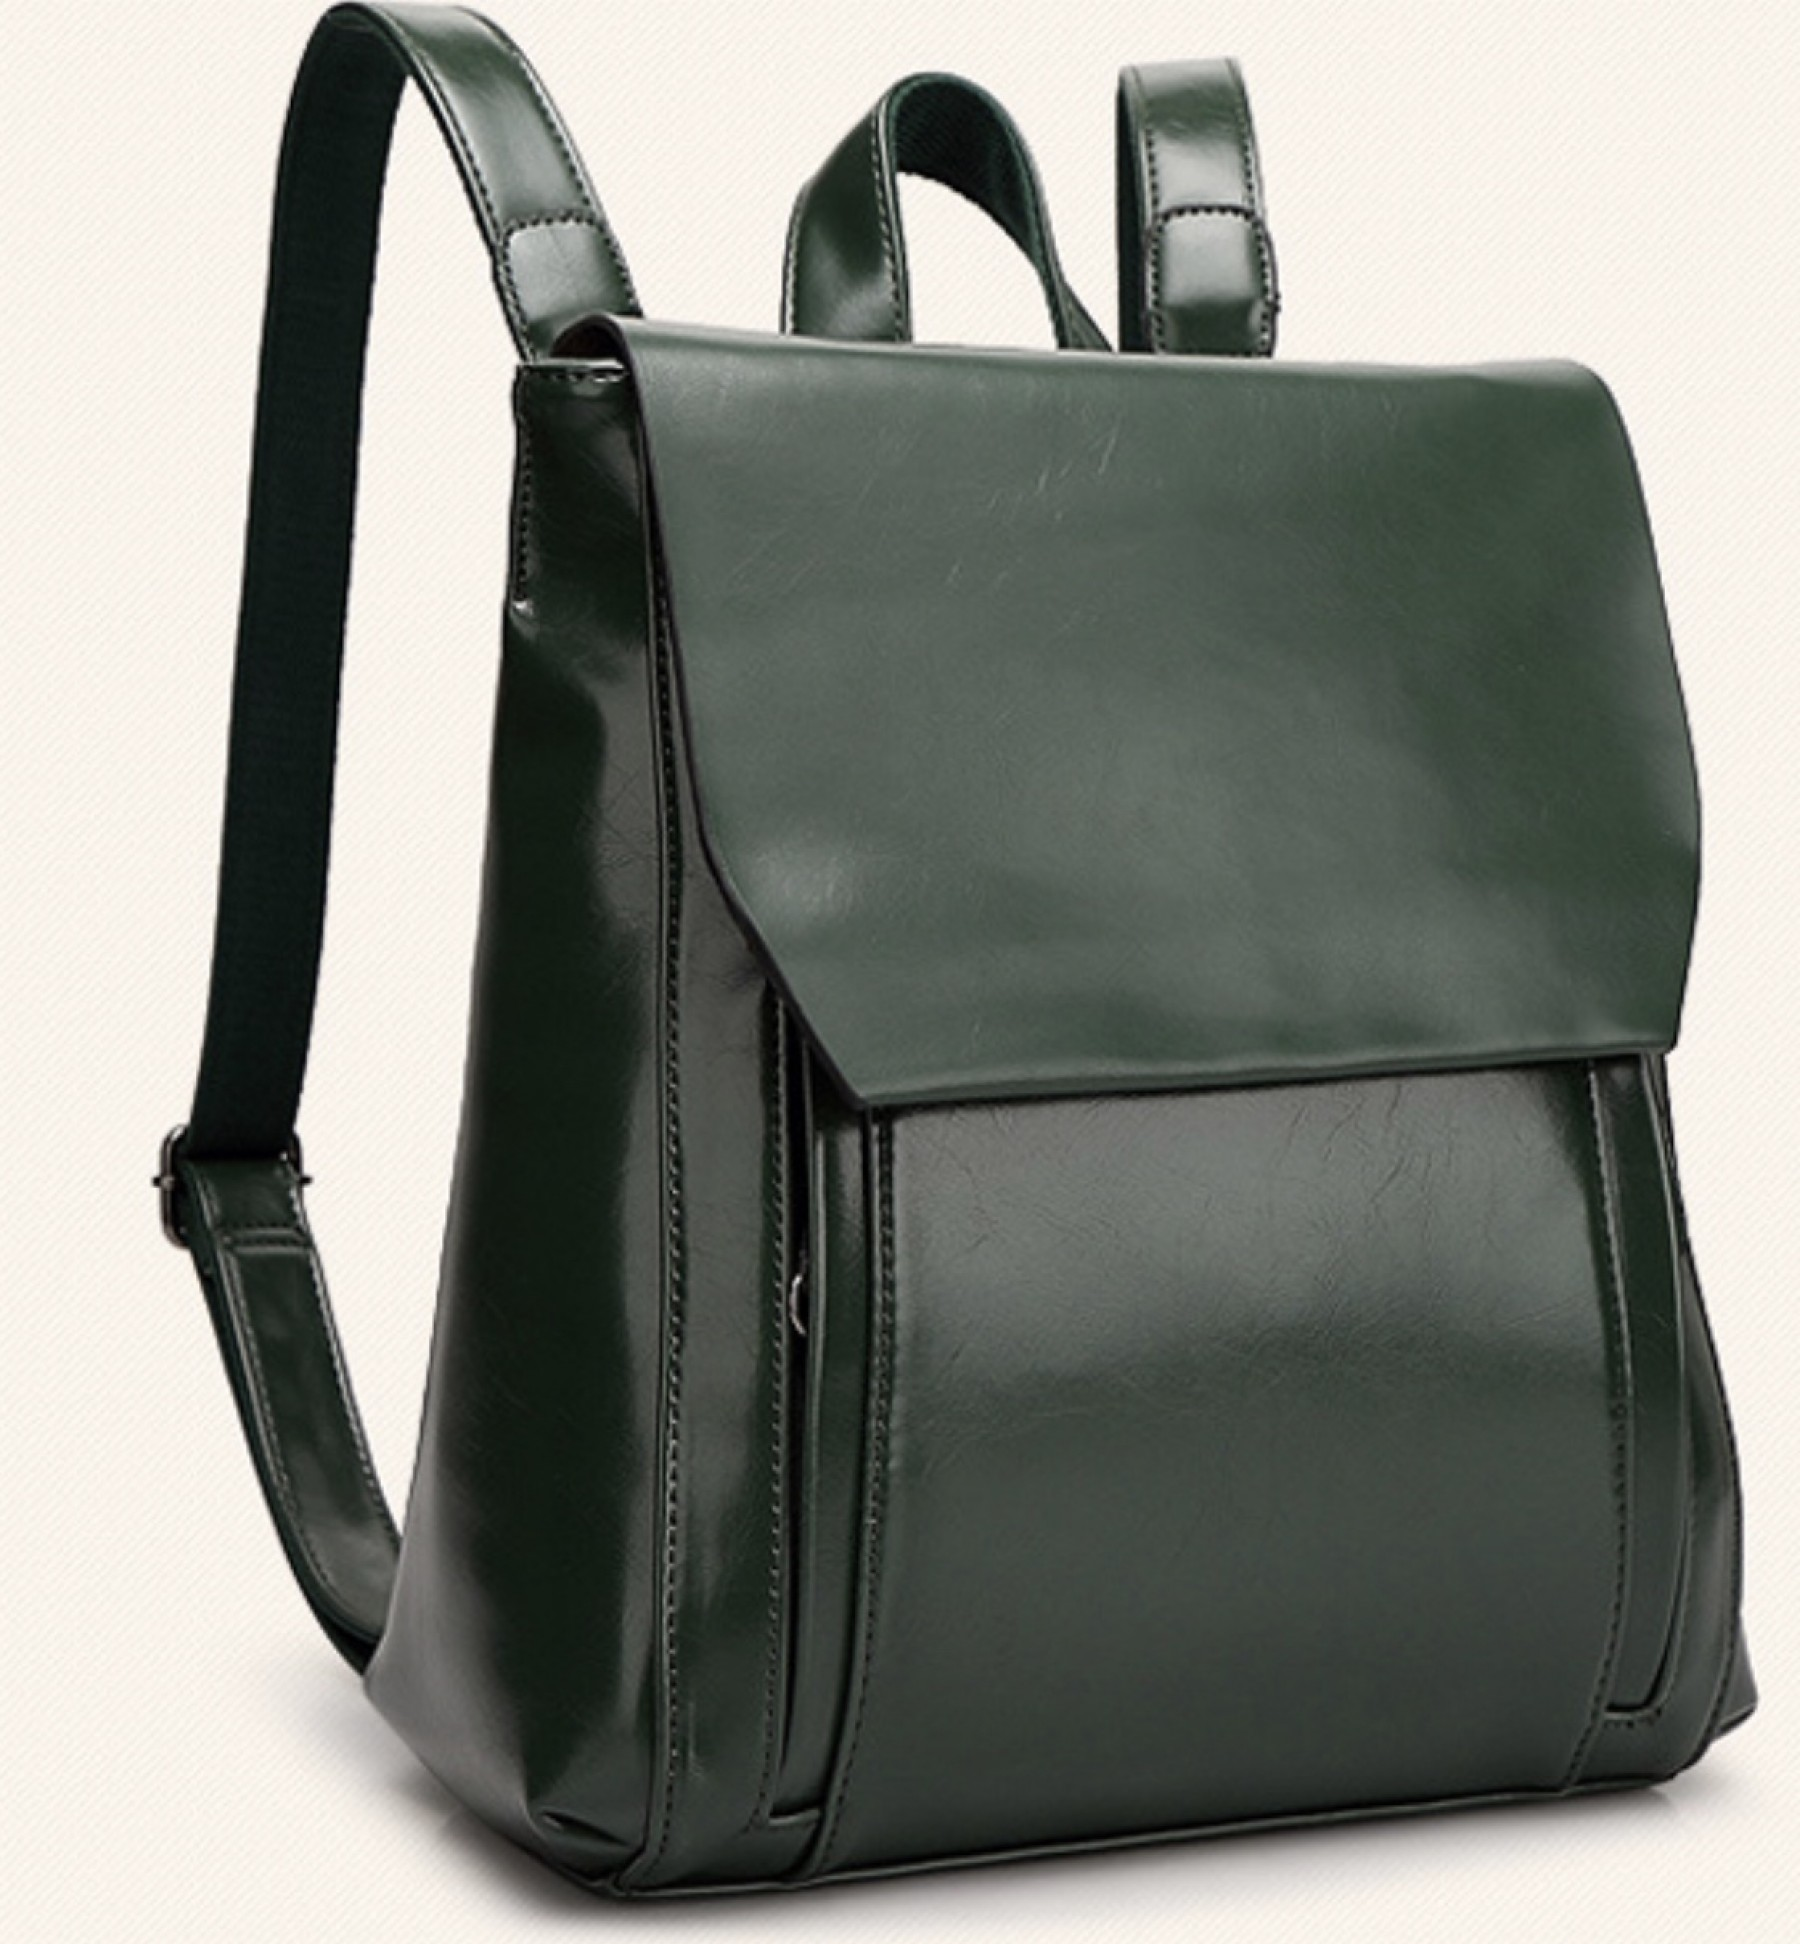 SZ9-16017- Women's Modern Style Classic Leather Backpack (Green)